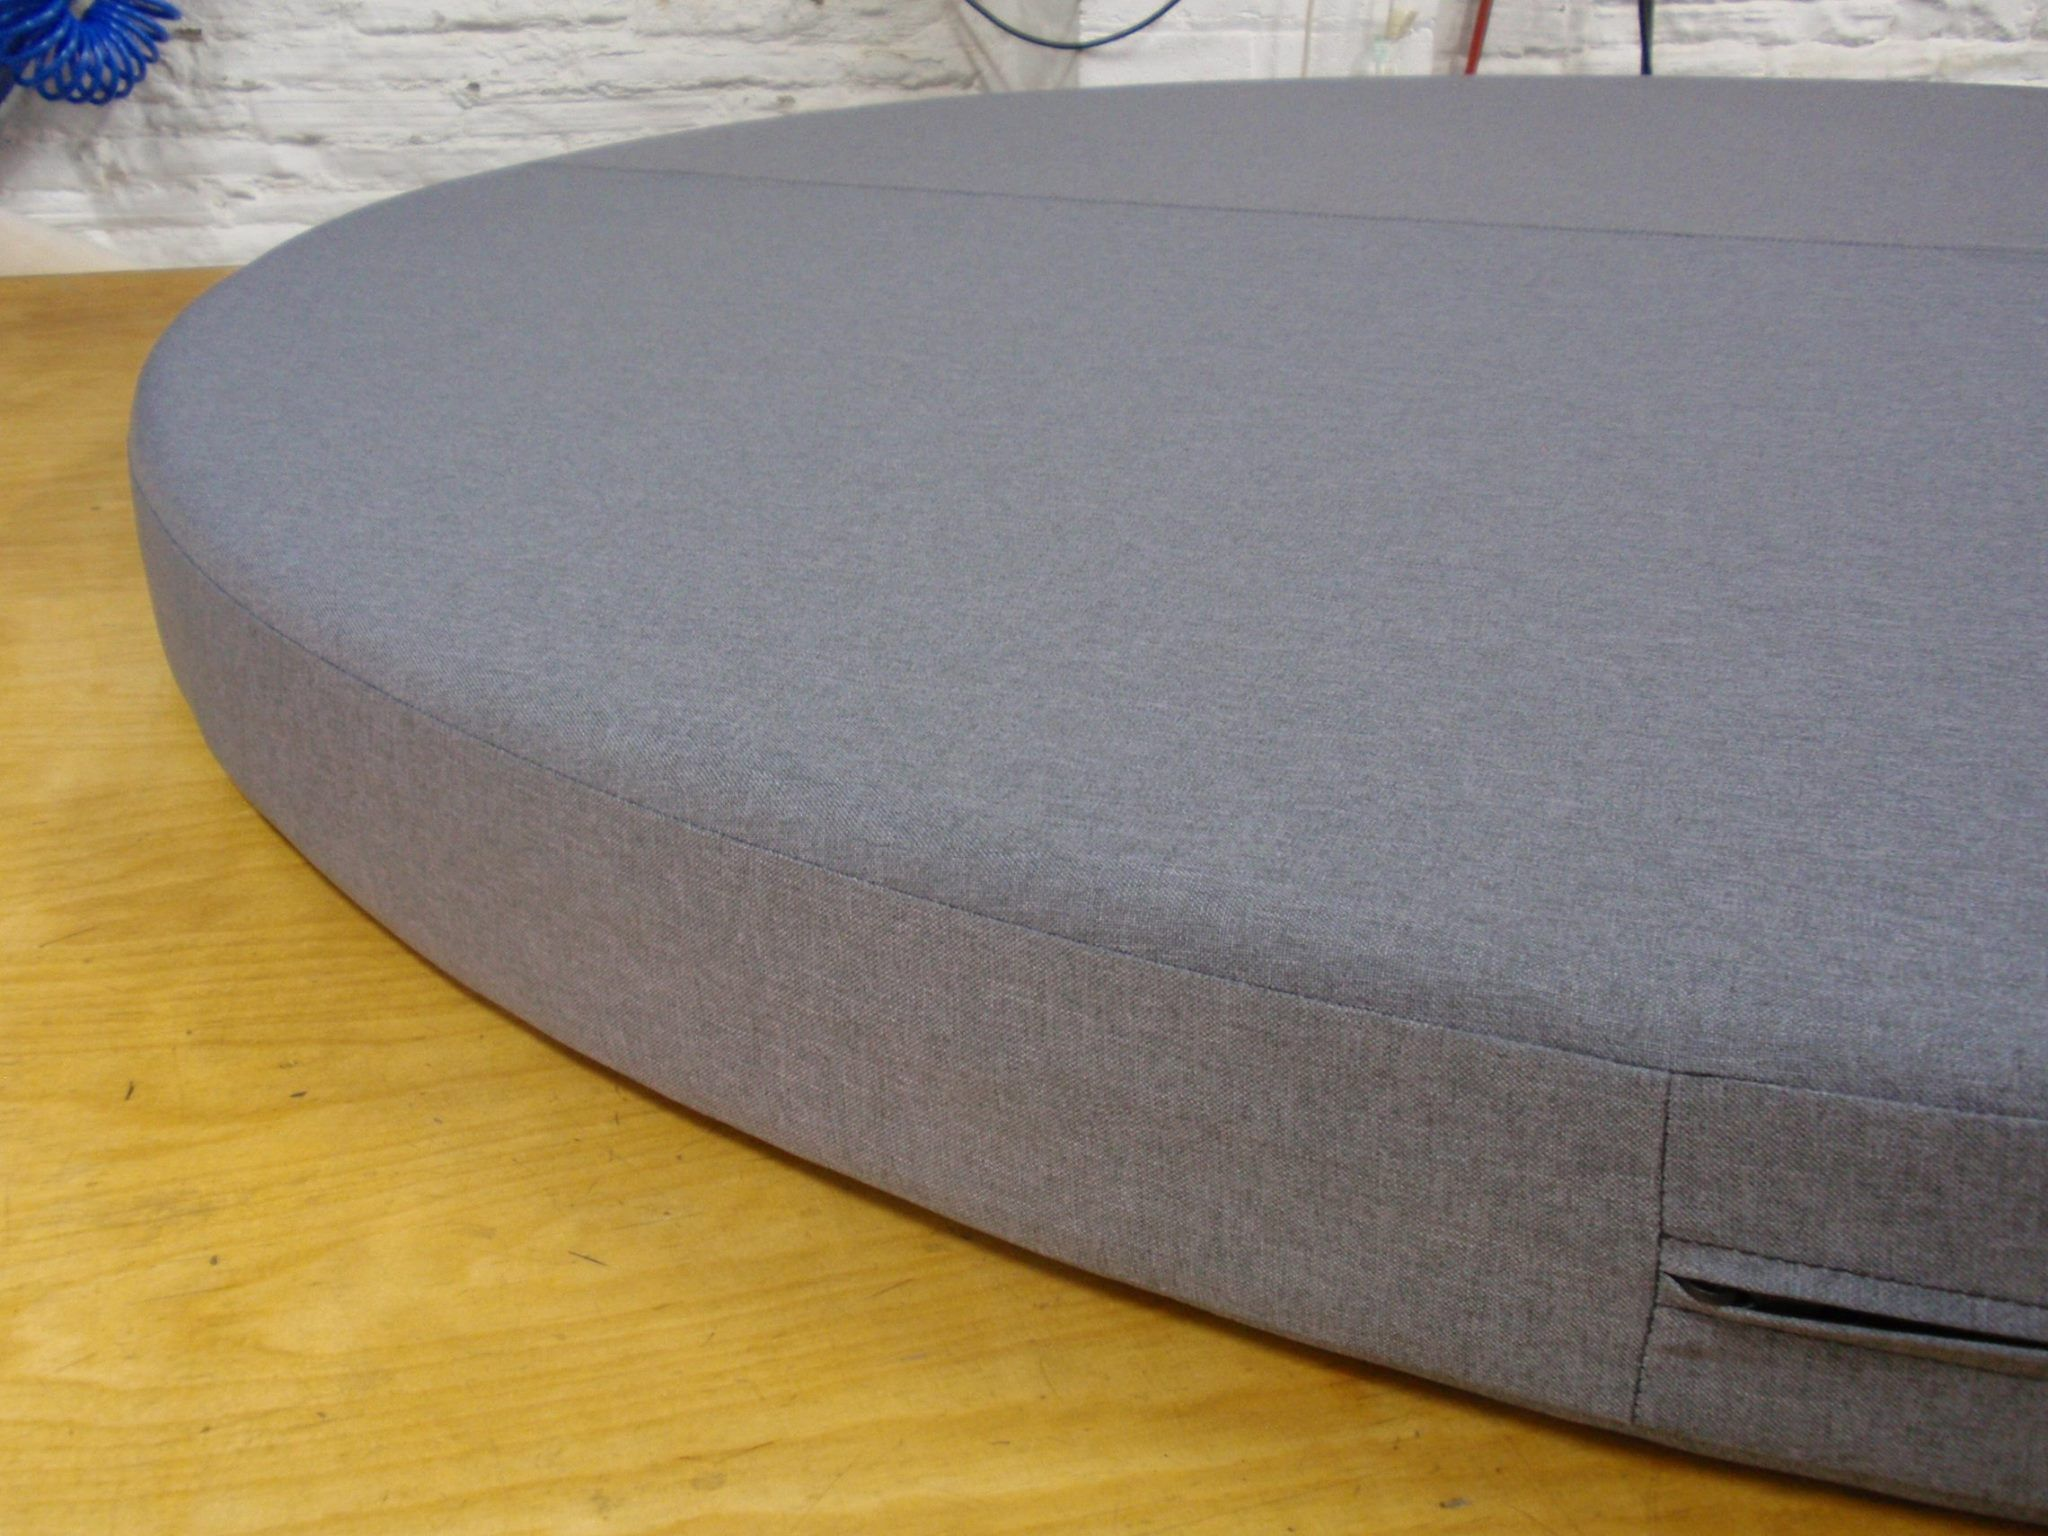 Oversized Foam Cushion With Saddle Stitch In The Middle And A